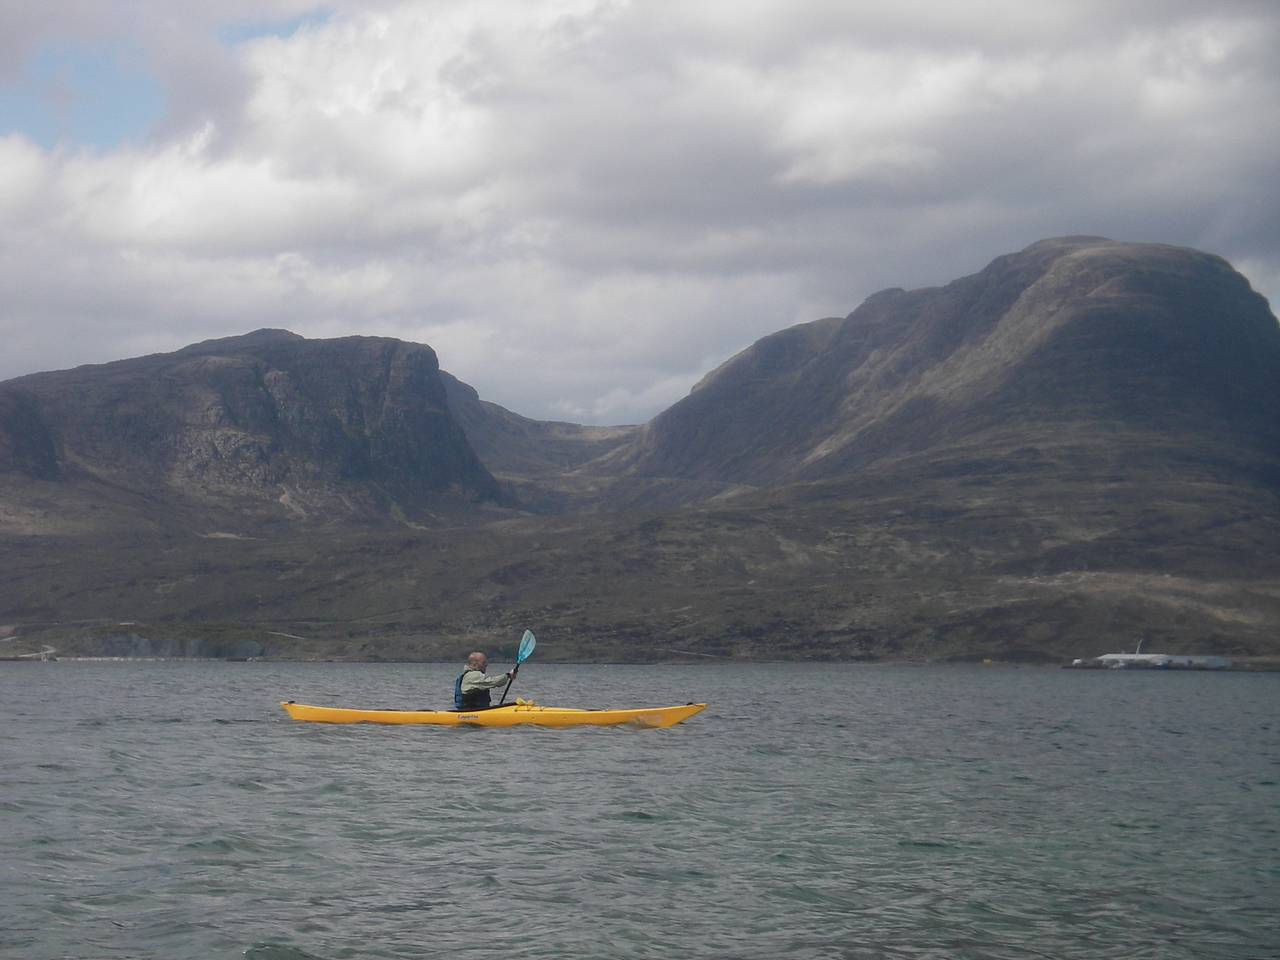 Day 5.  Ritchie on Loch Kishorn.  Bealach Na Ba in the background.